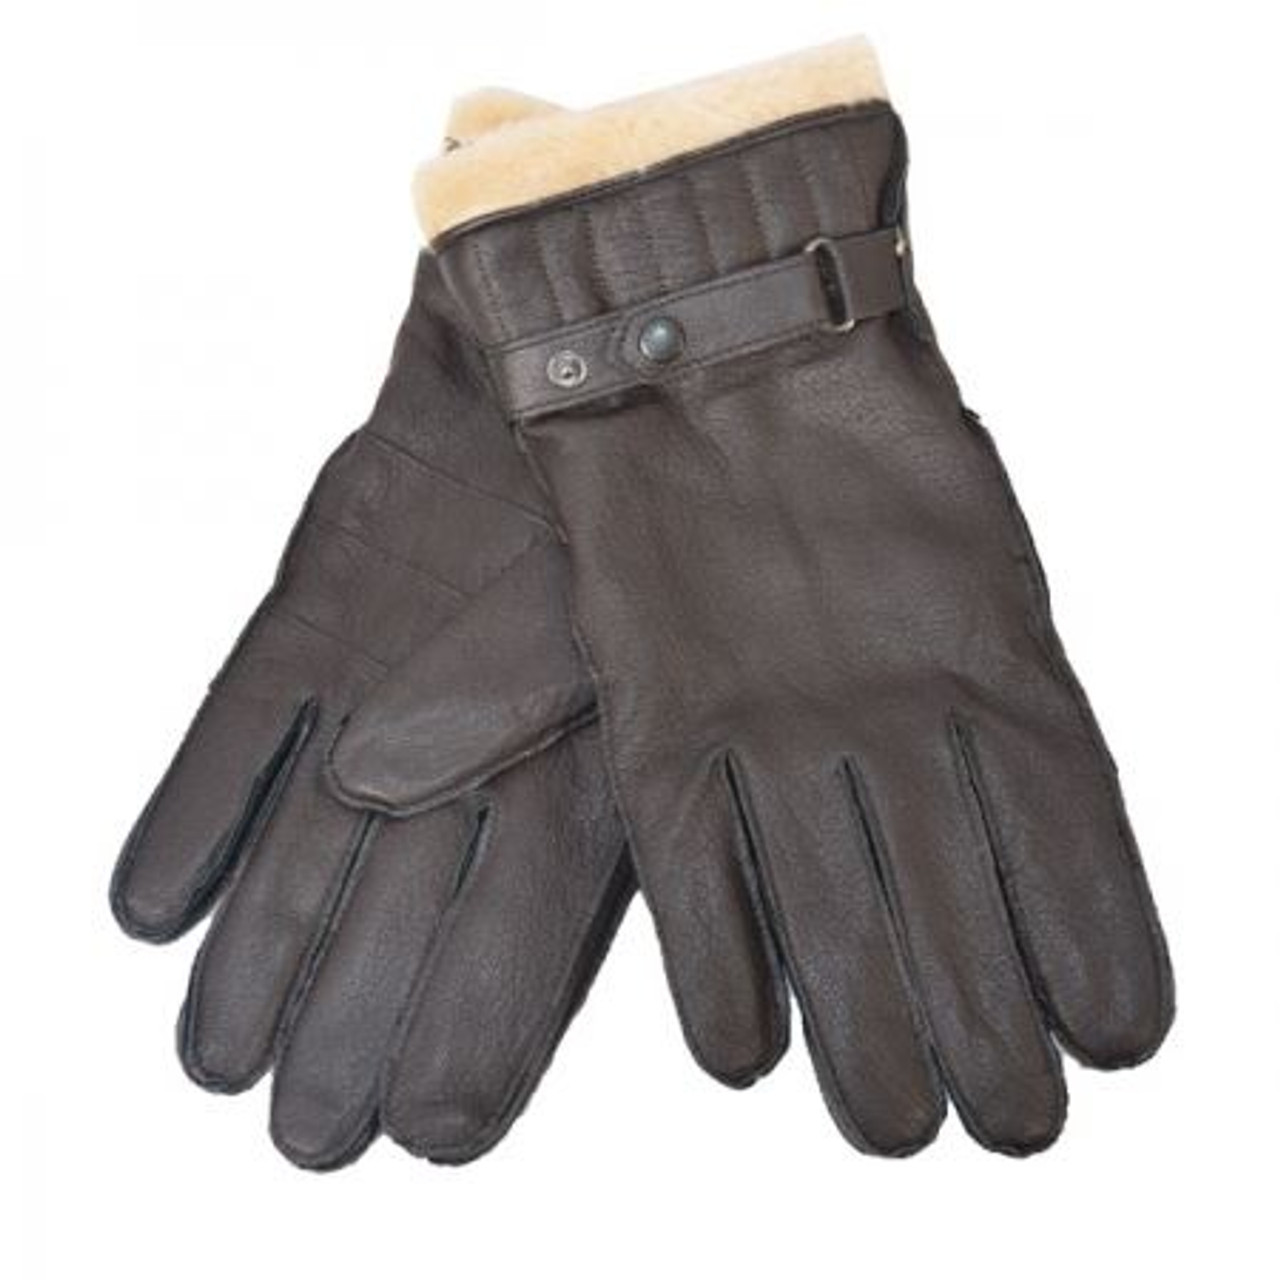 Barbour Mens Leather Utility Glove